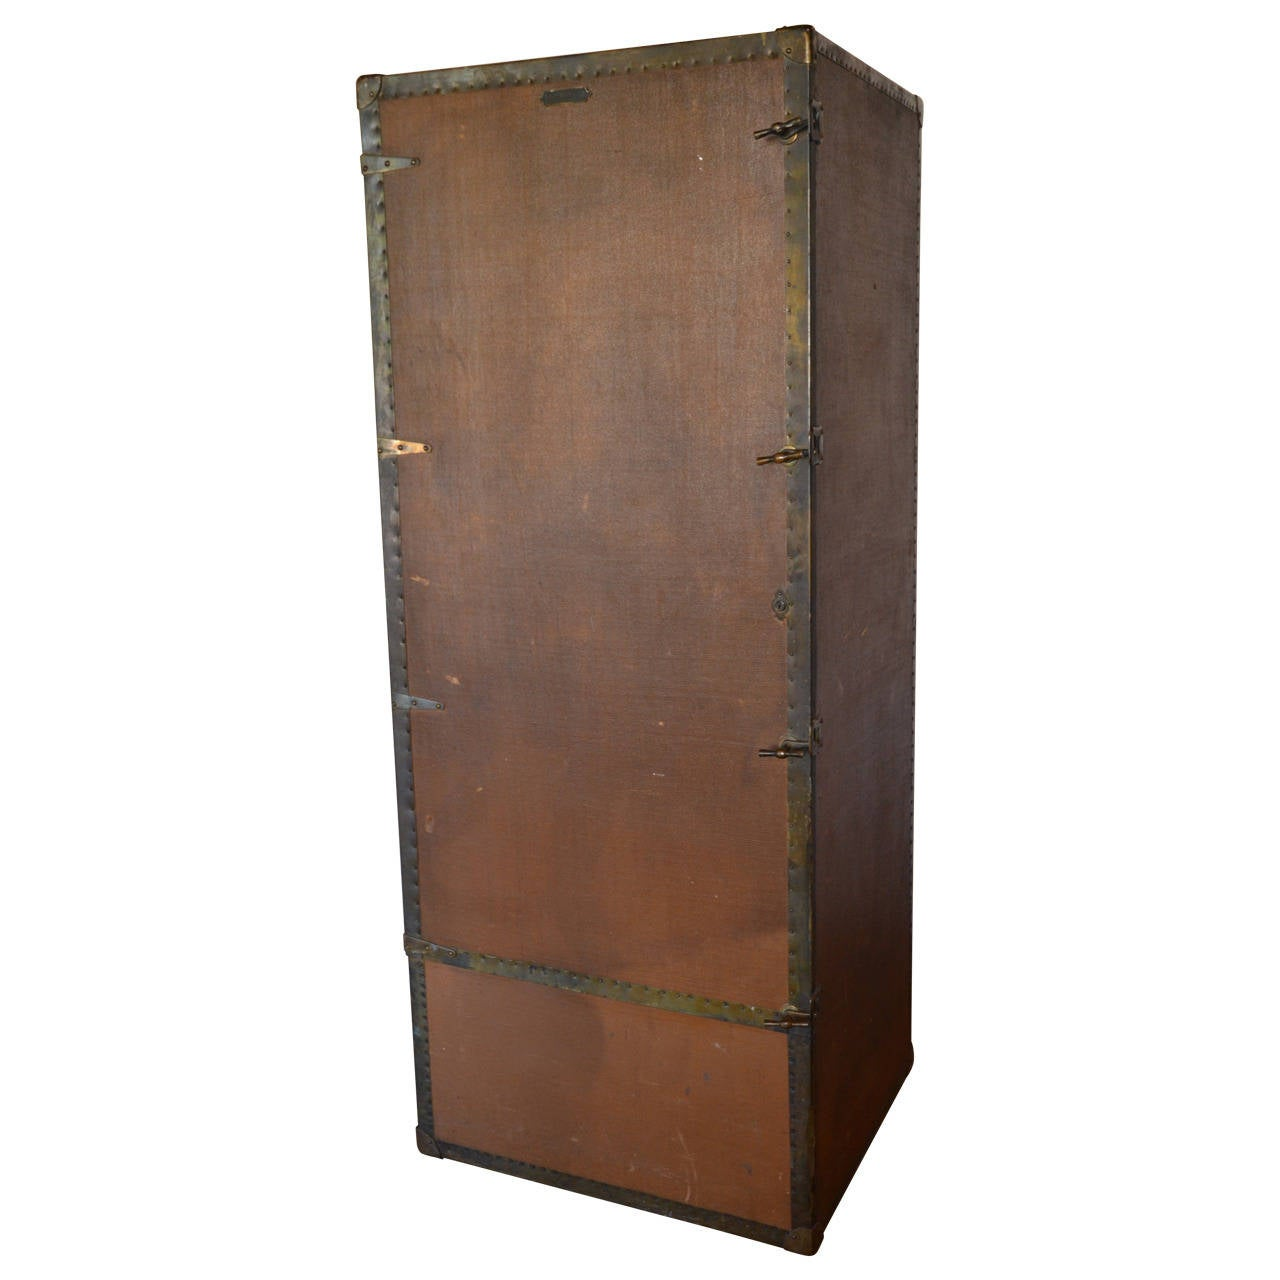 Wardrobe Steamer Trunk, circa 1915 1